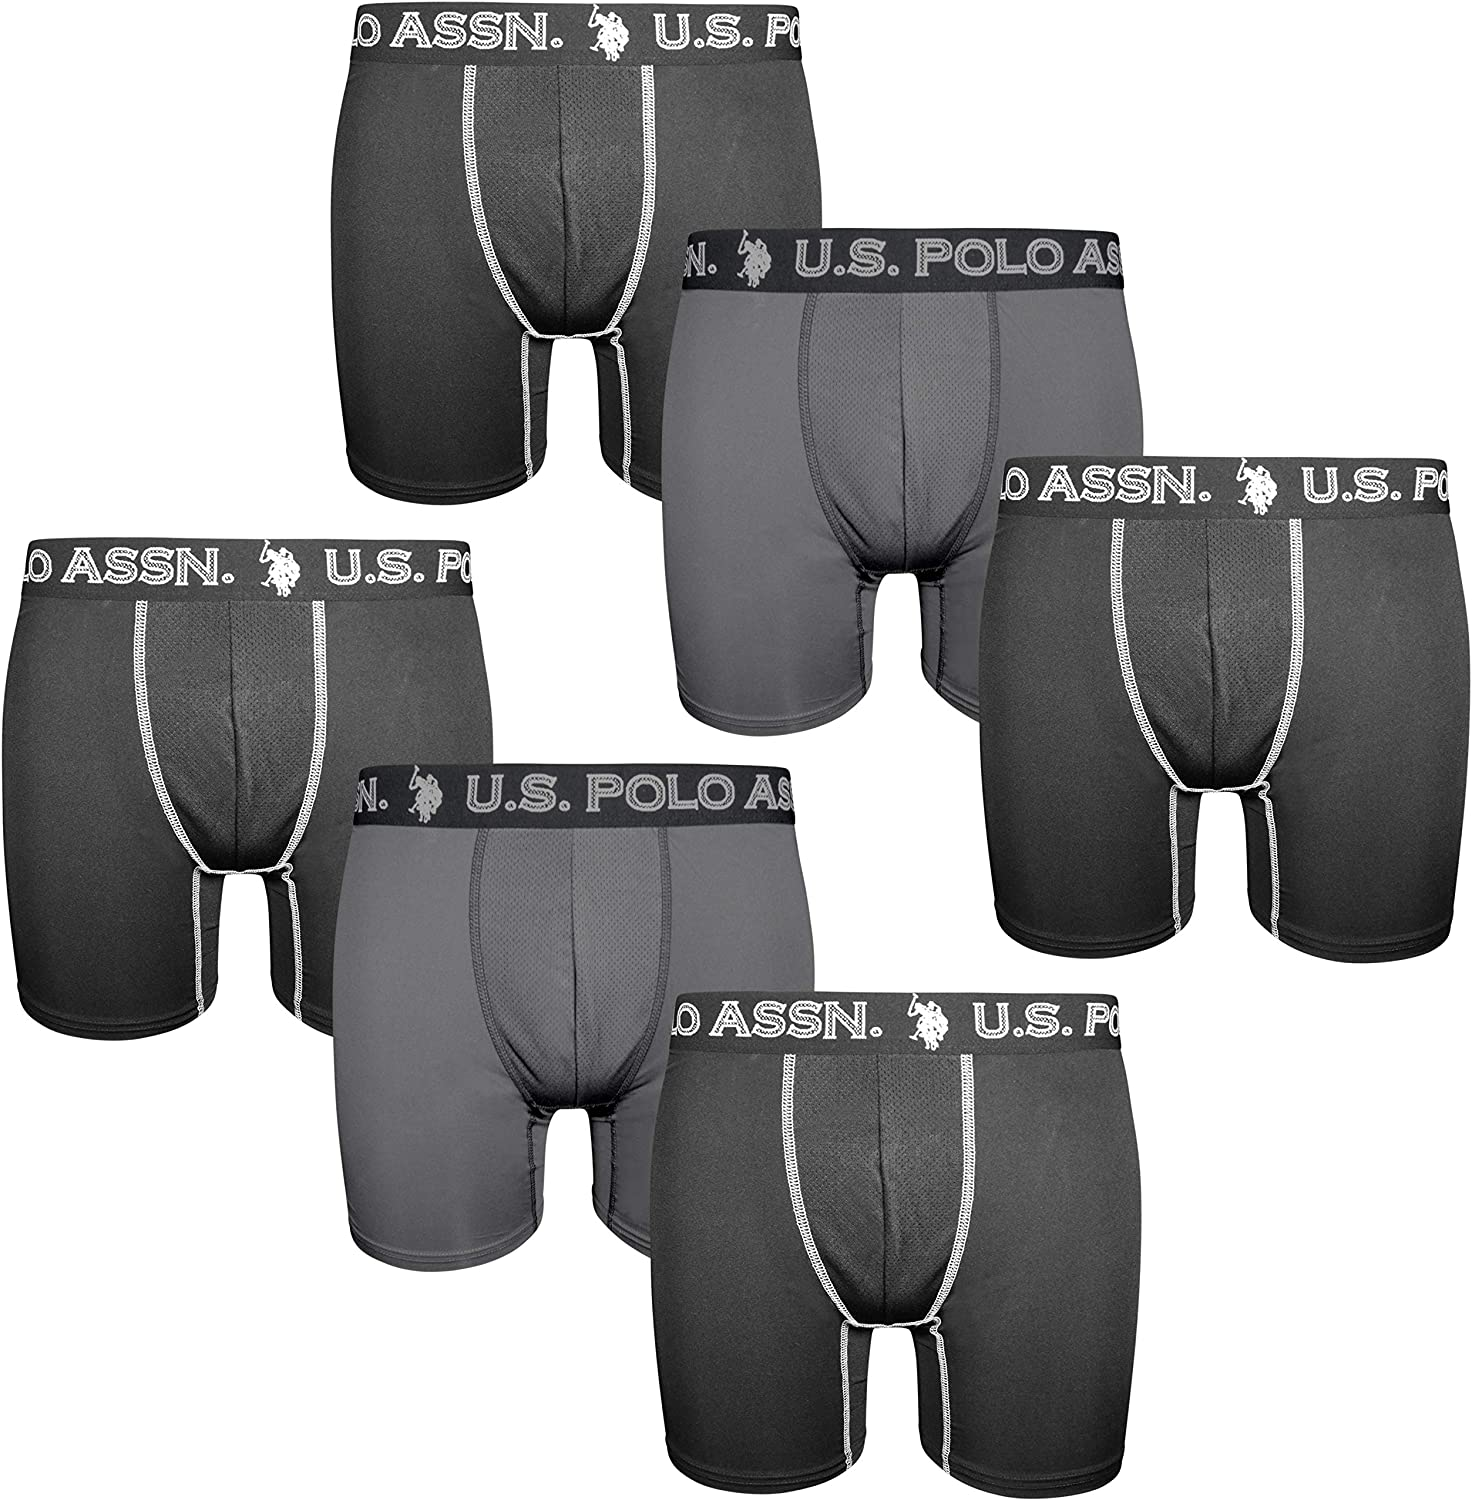 U.S. Polo Assn. Mens' Quick Dry Performance Boxer Briefs (6 Pack)